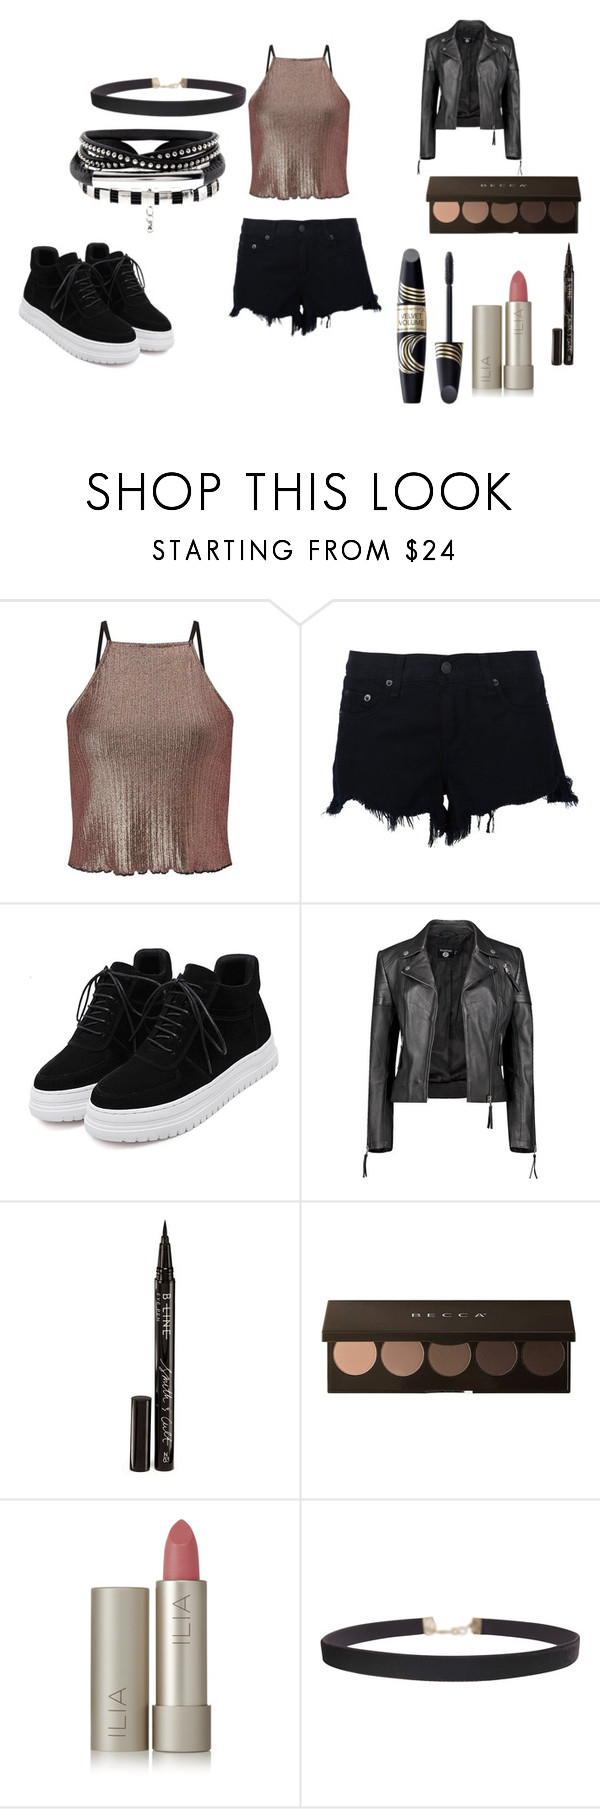 """""""Untitled #441"""" by destiny-am ❤ liked on Polyvore featuring Miss Selfridge, rag & bone, Boohoo, Smith & Cult, Ilia, Max Factor and Humble Chic"""